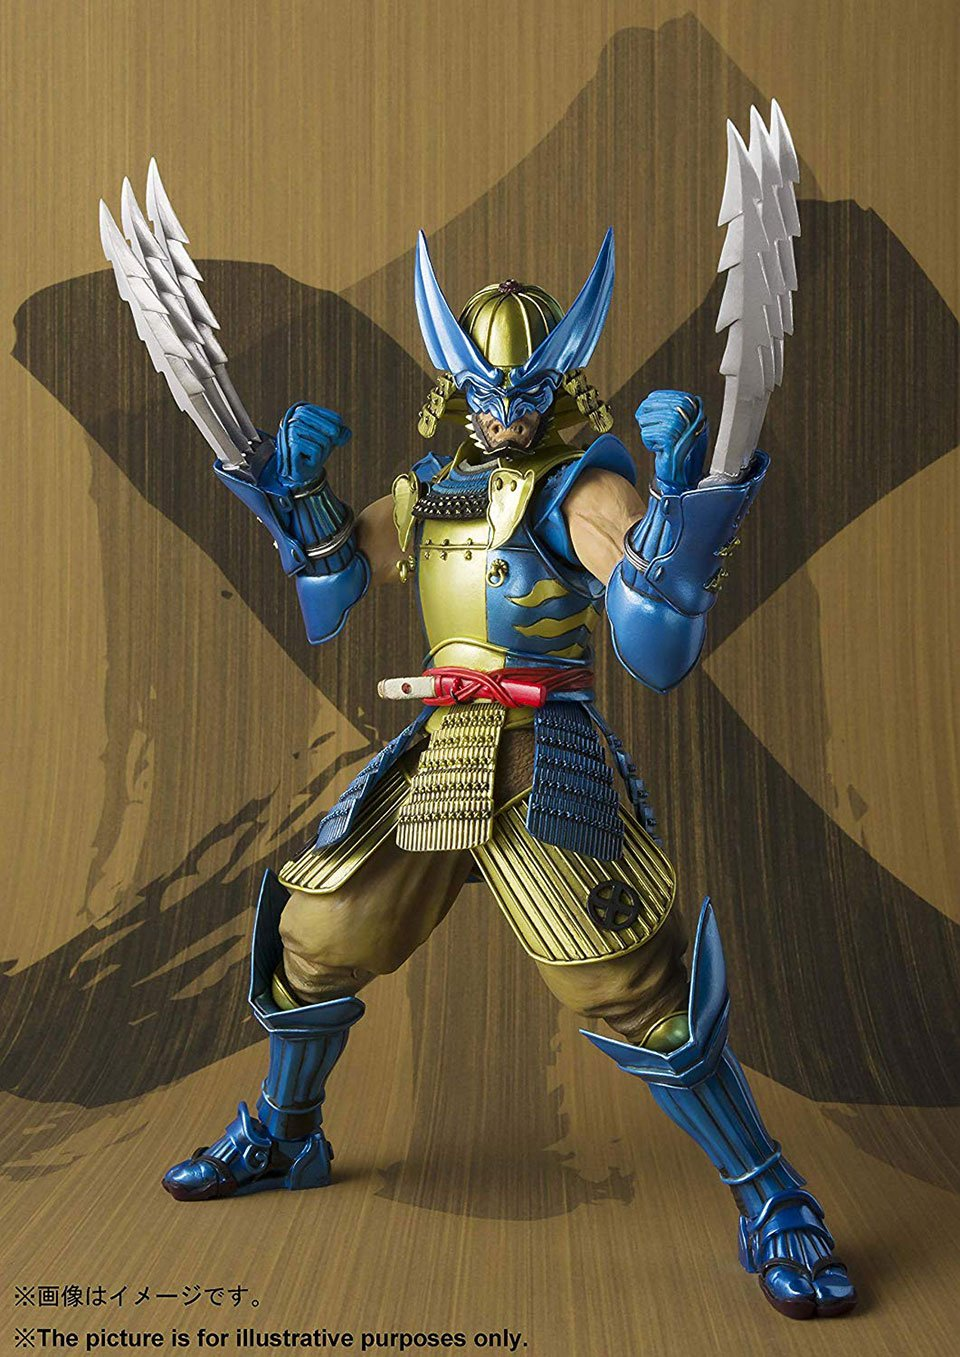 Bandai Turned Wolverine into a Samurai in This Badass Action Figure